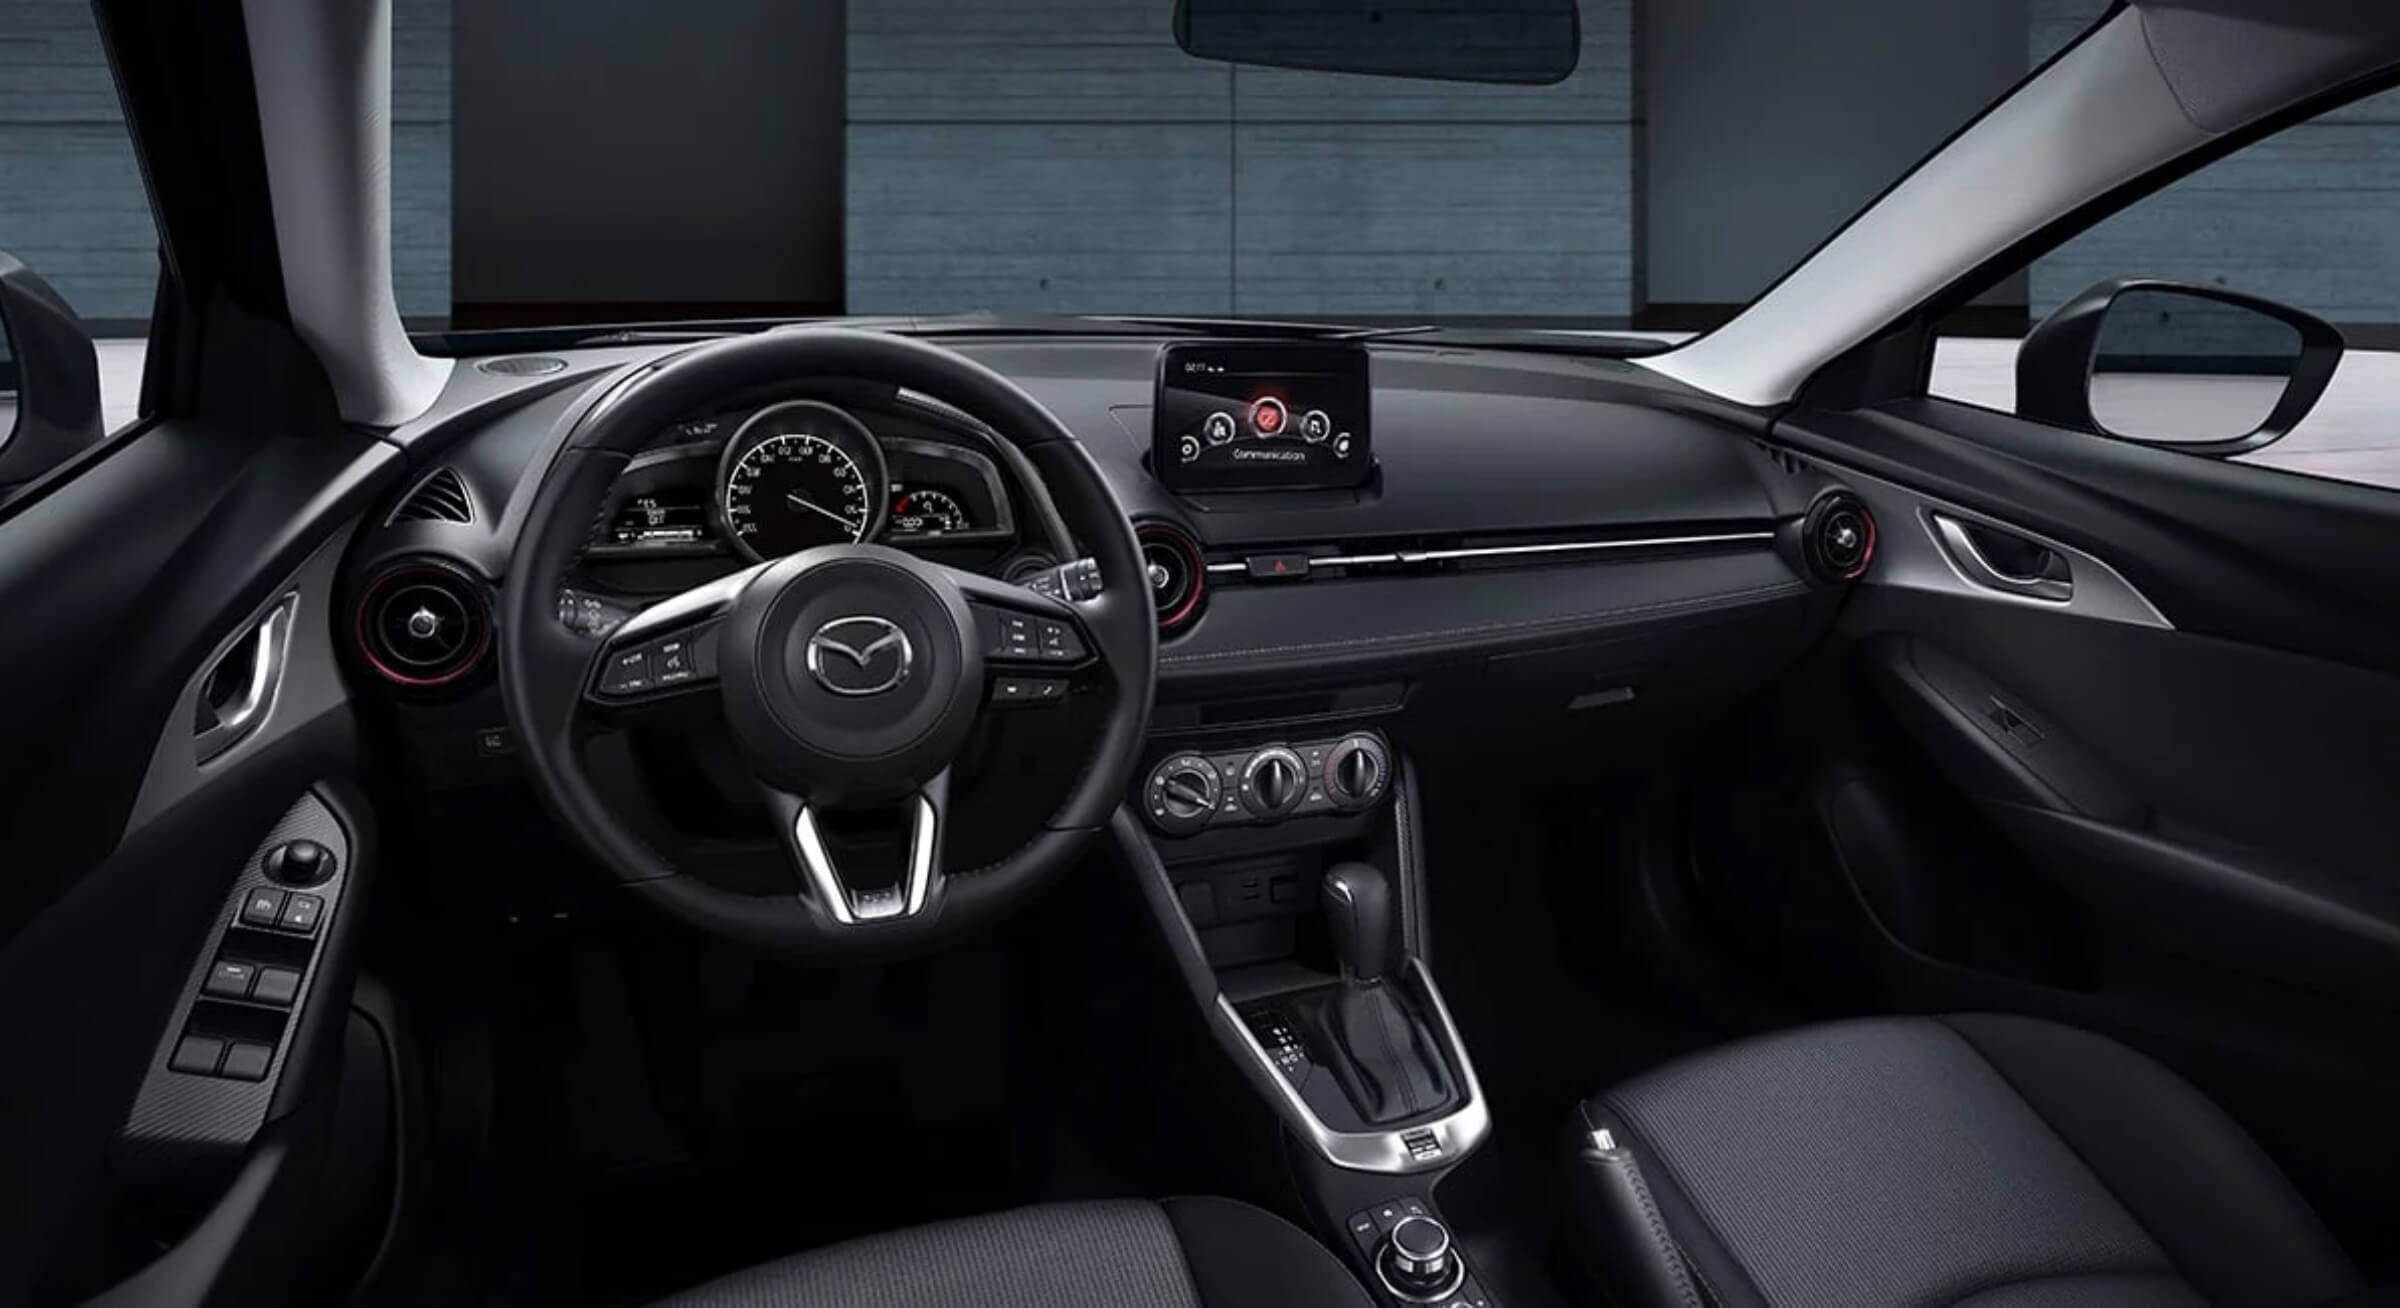 Mazdacx3-Black Cloth